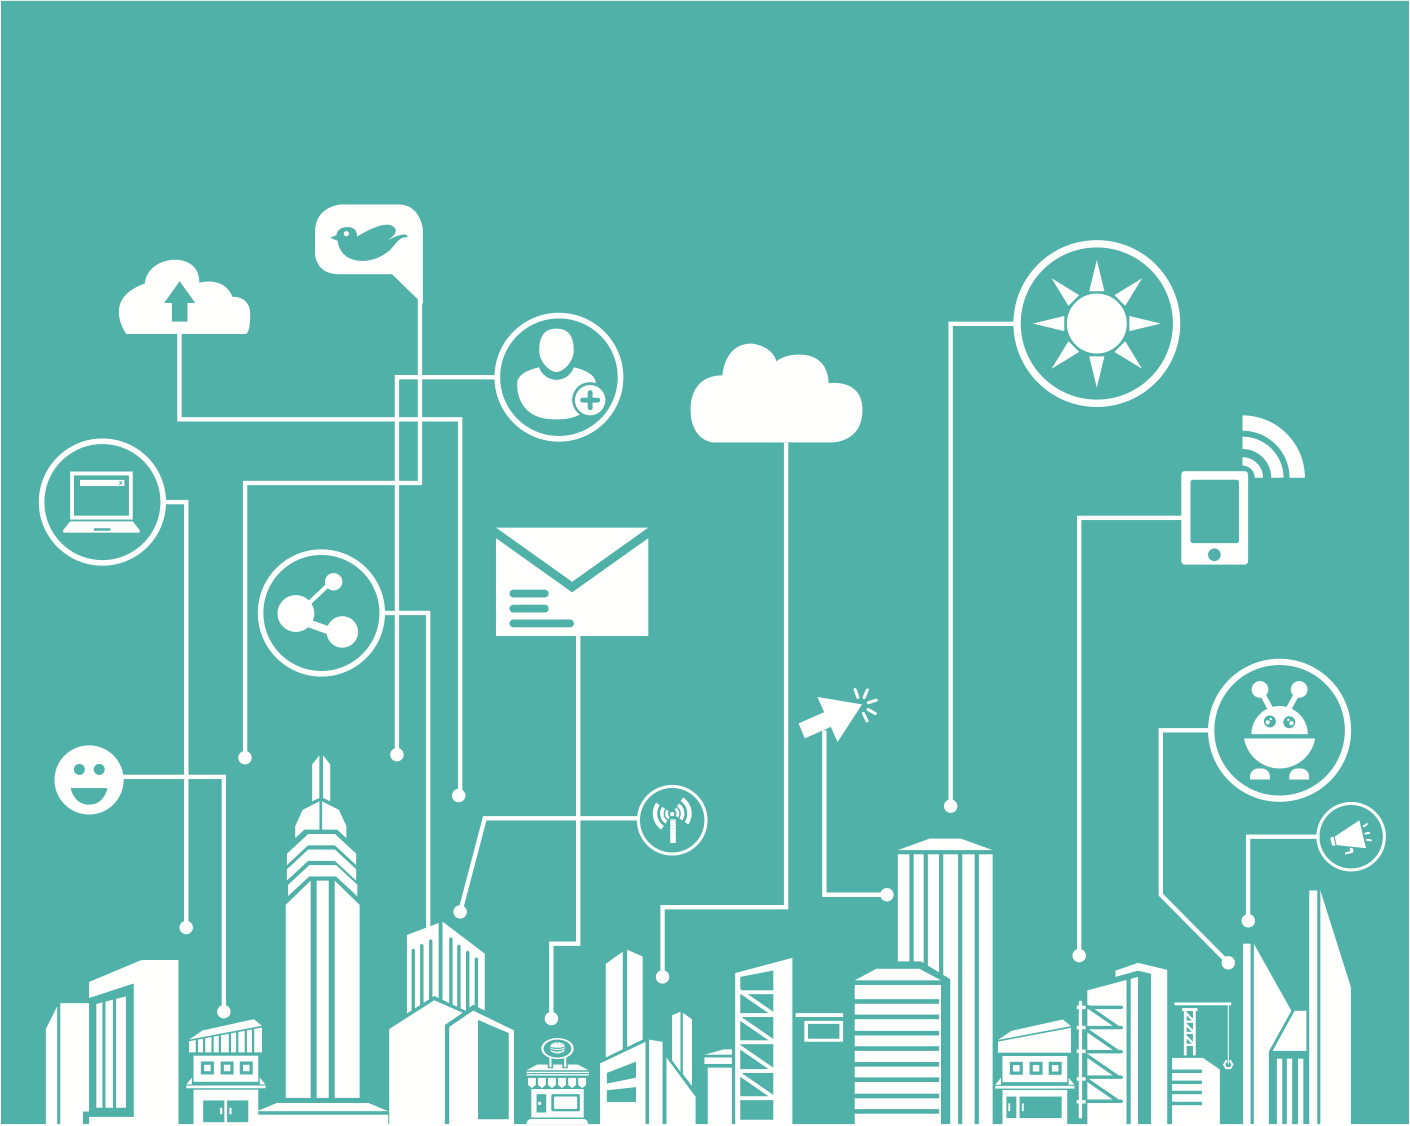 Social media and Internet related icons connected to a city skyline illustration